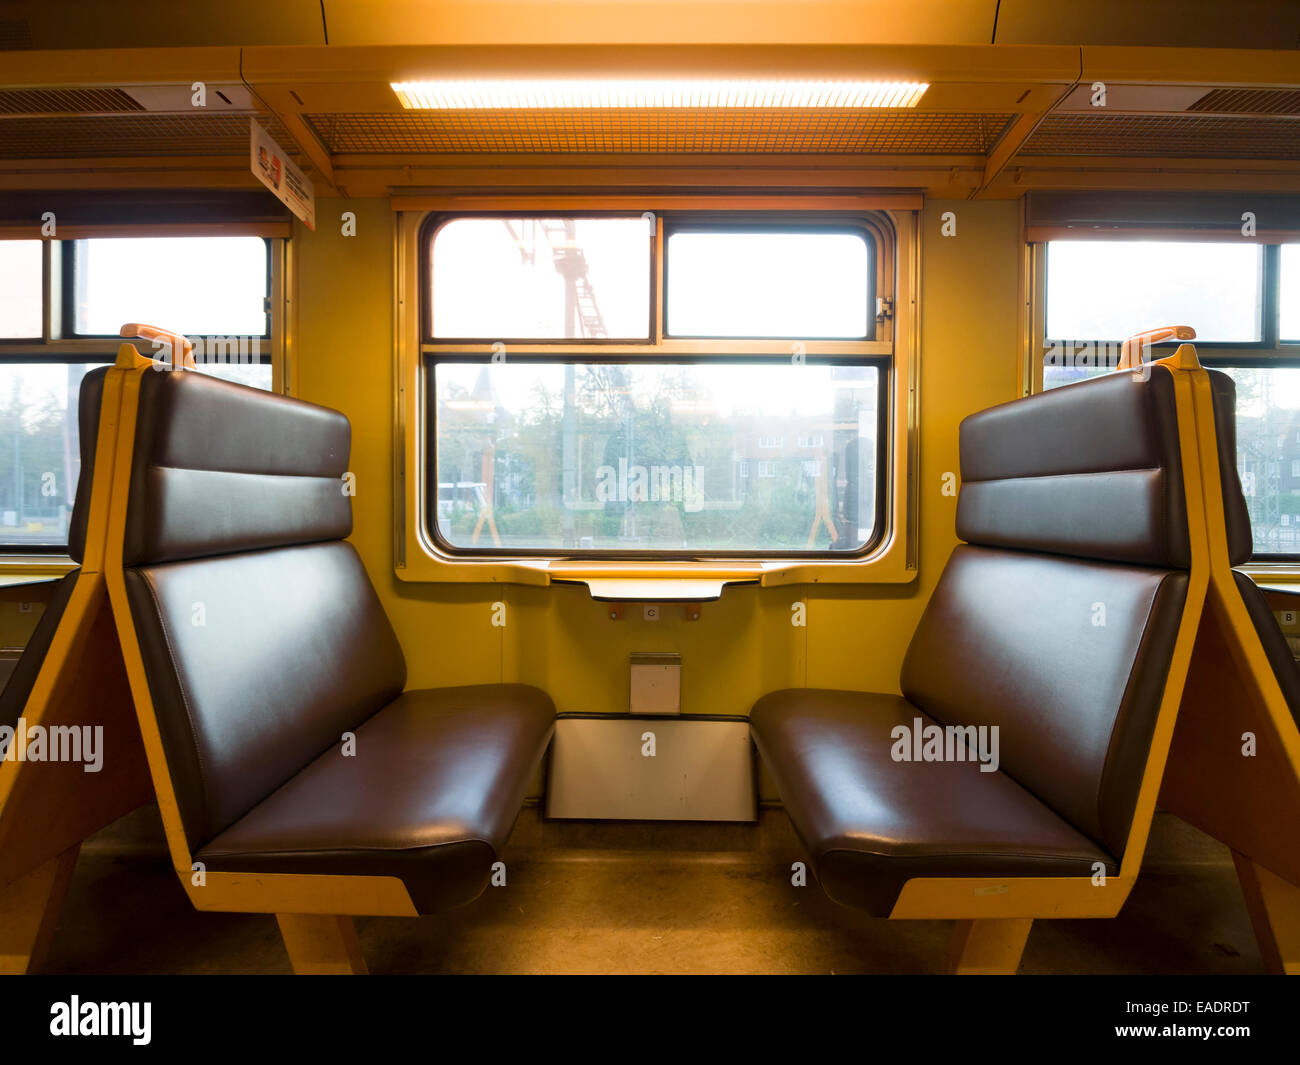 Train carriage with empty seats face to face Stock Photo